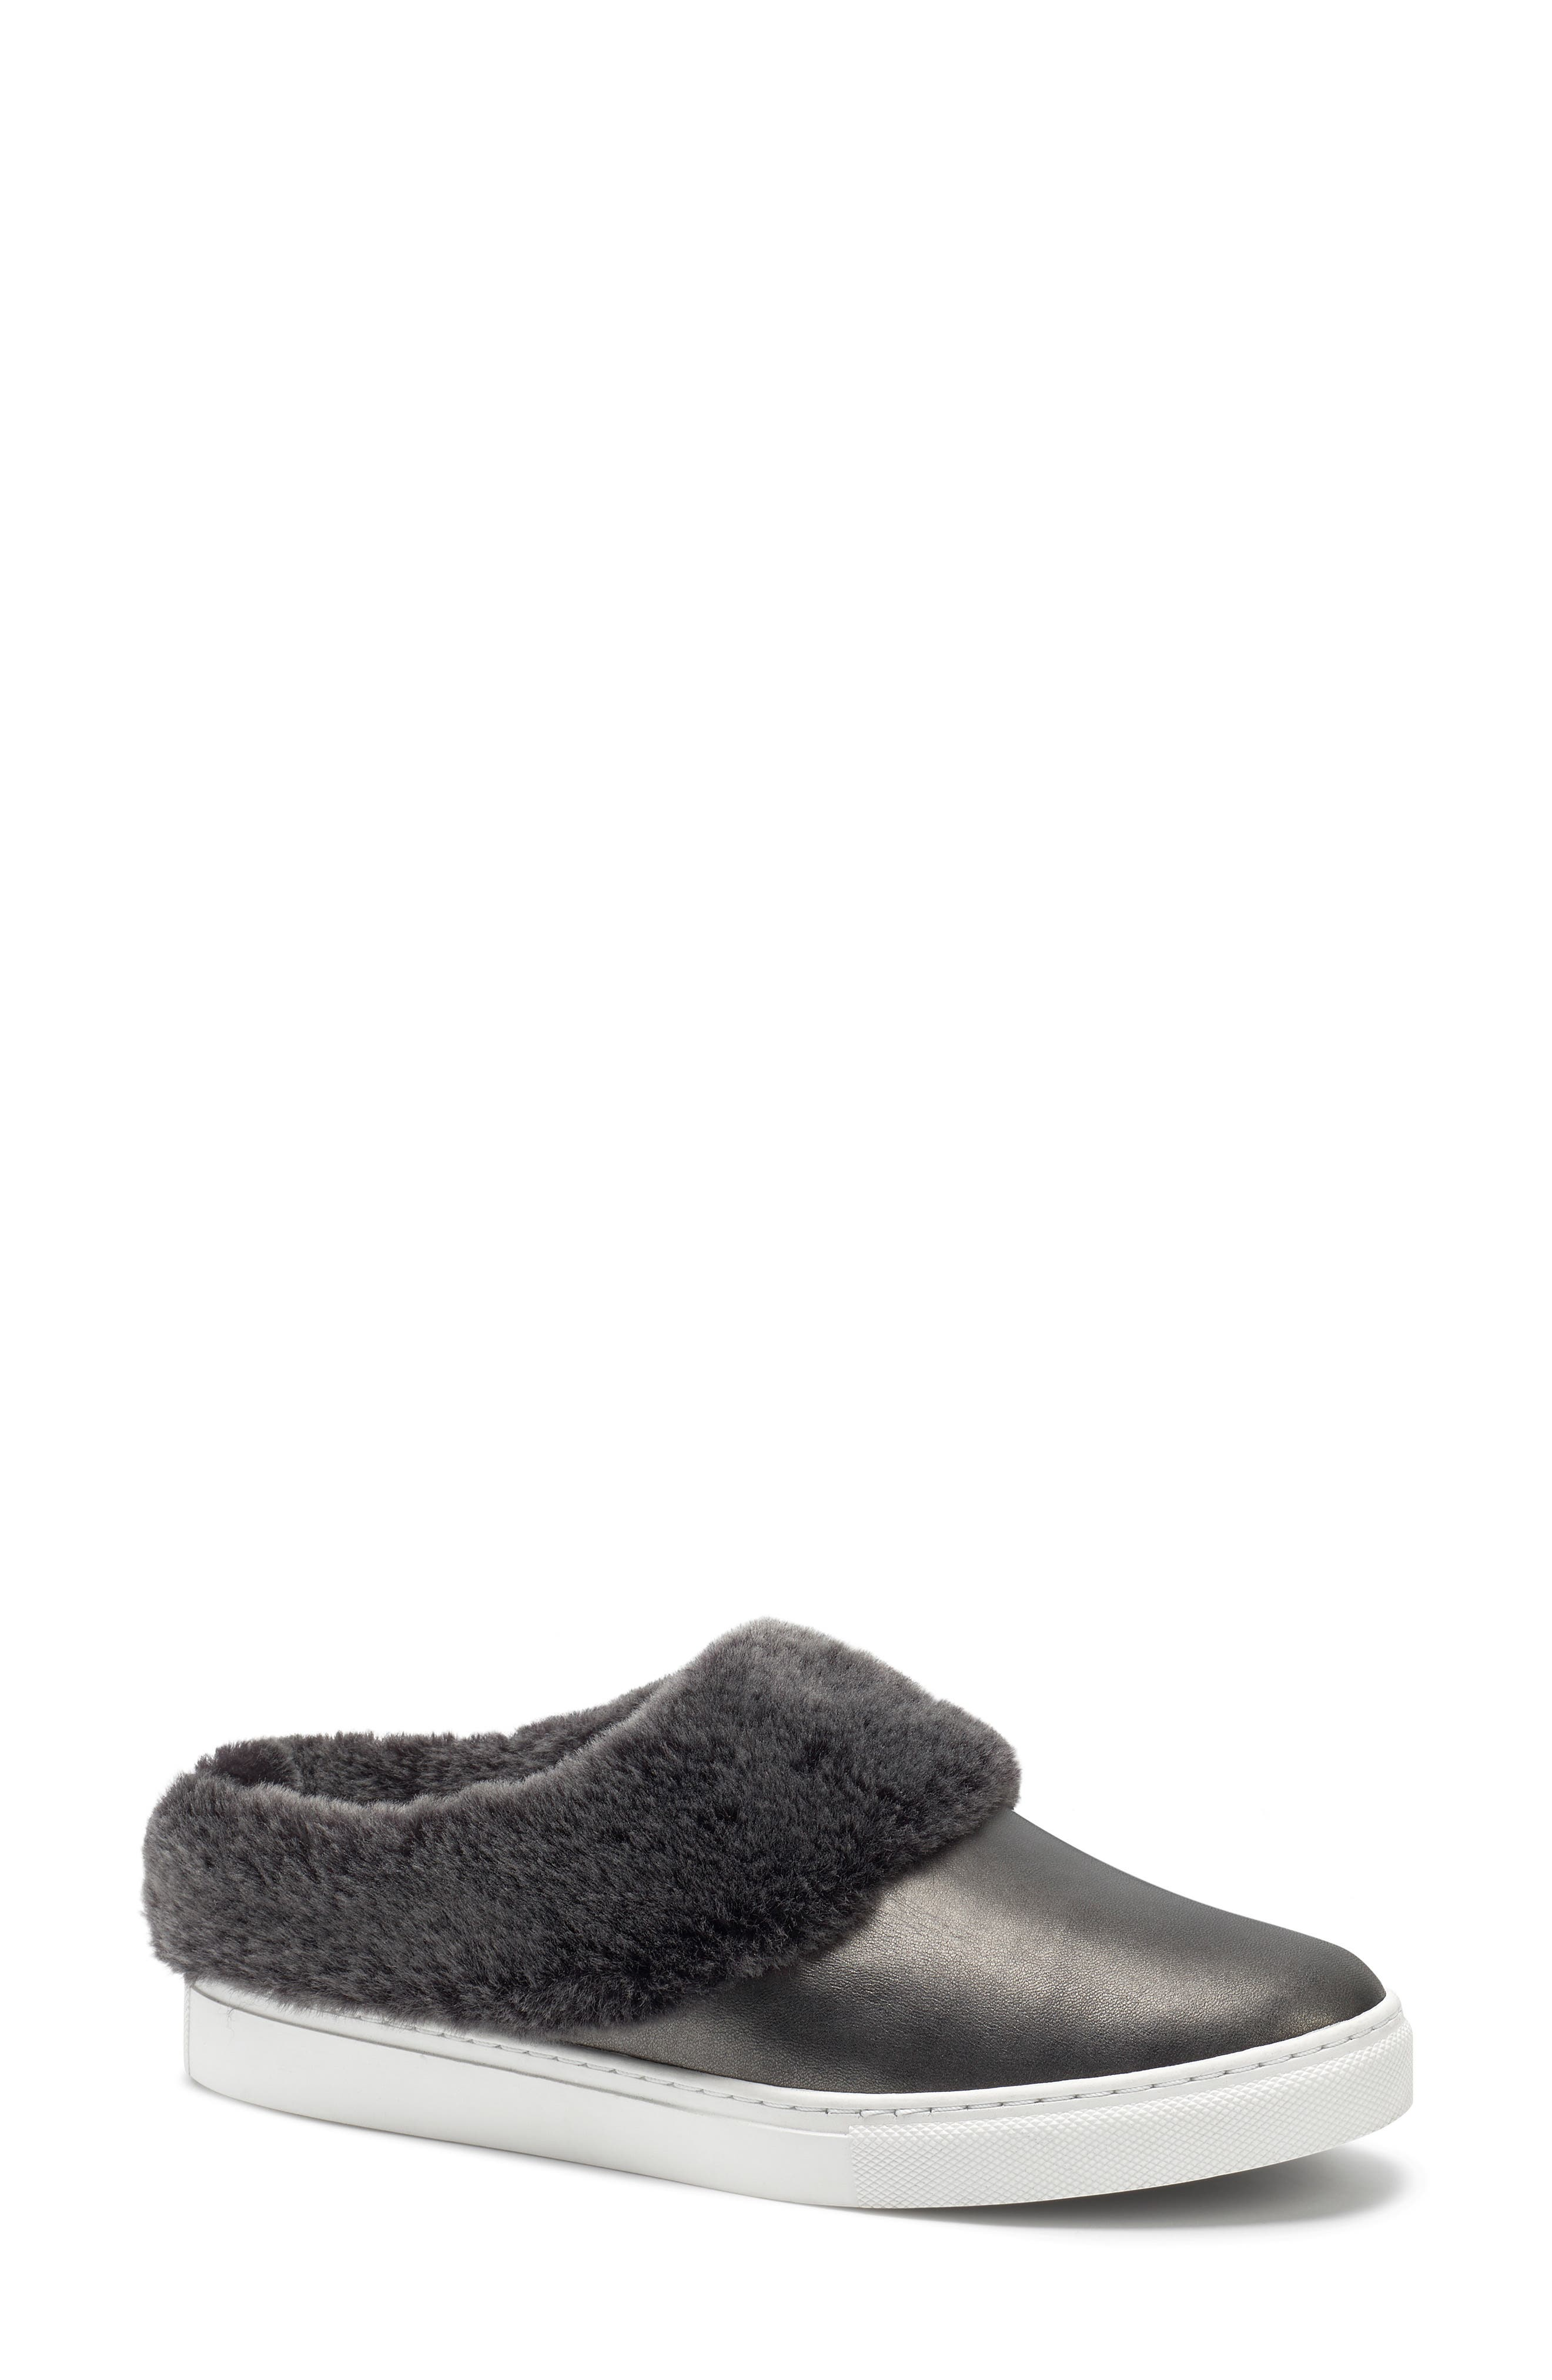 TRASK, Lisa Genuine Shearling Trim Slip-On Sneaker, Main thumbnail 1, color, PEWTER LEATHER